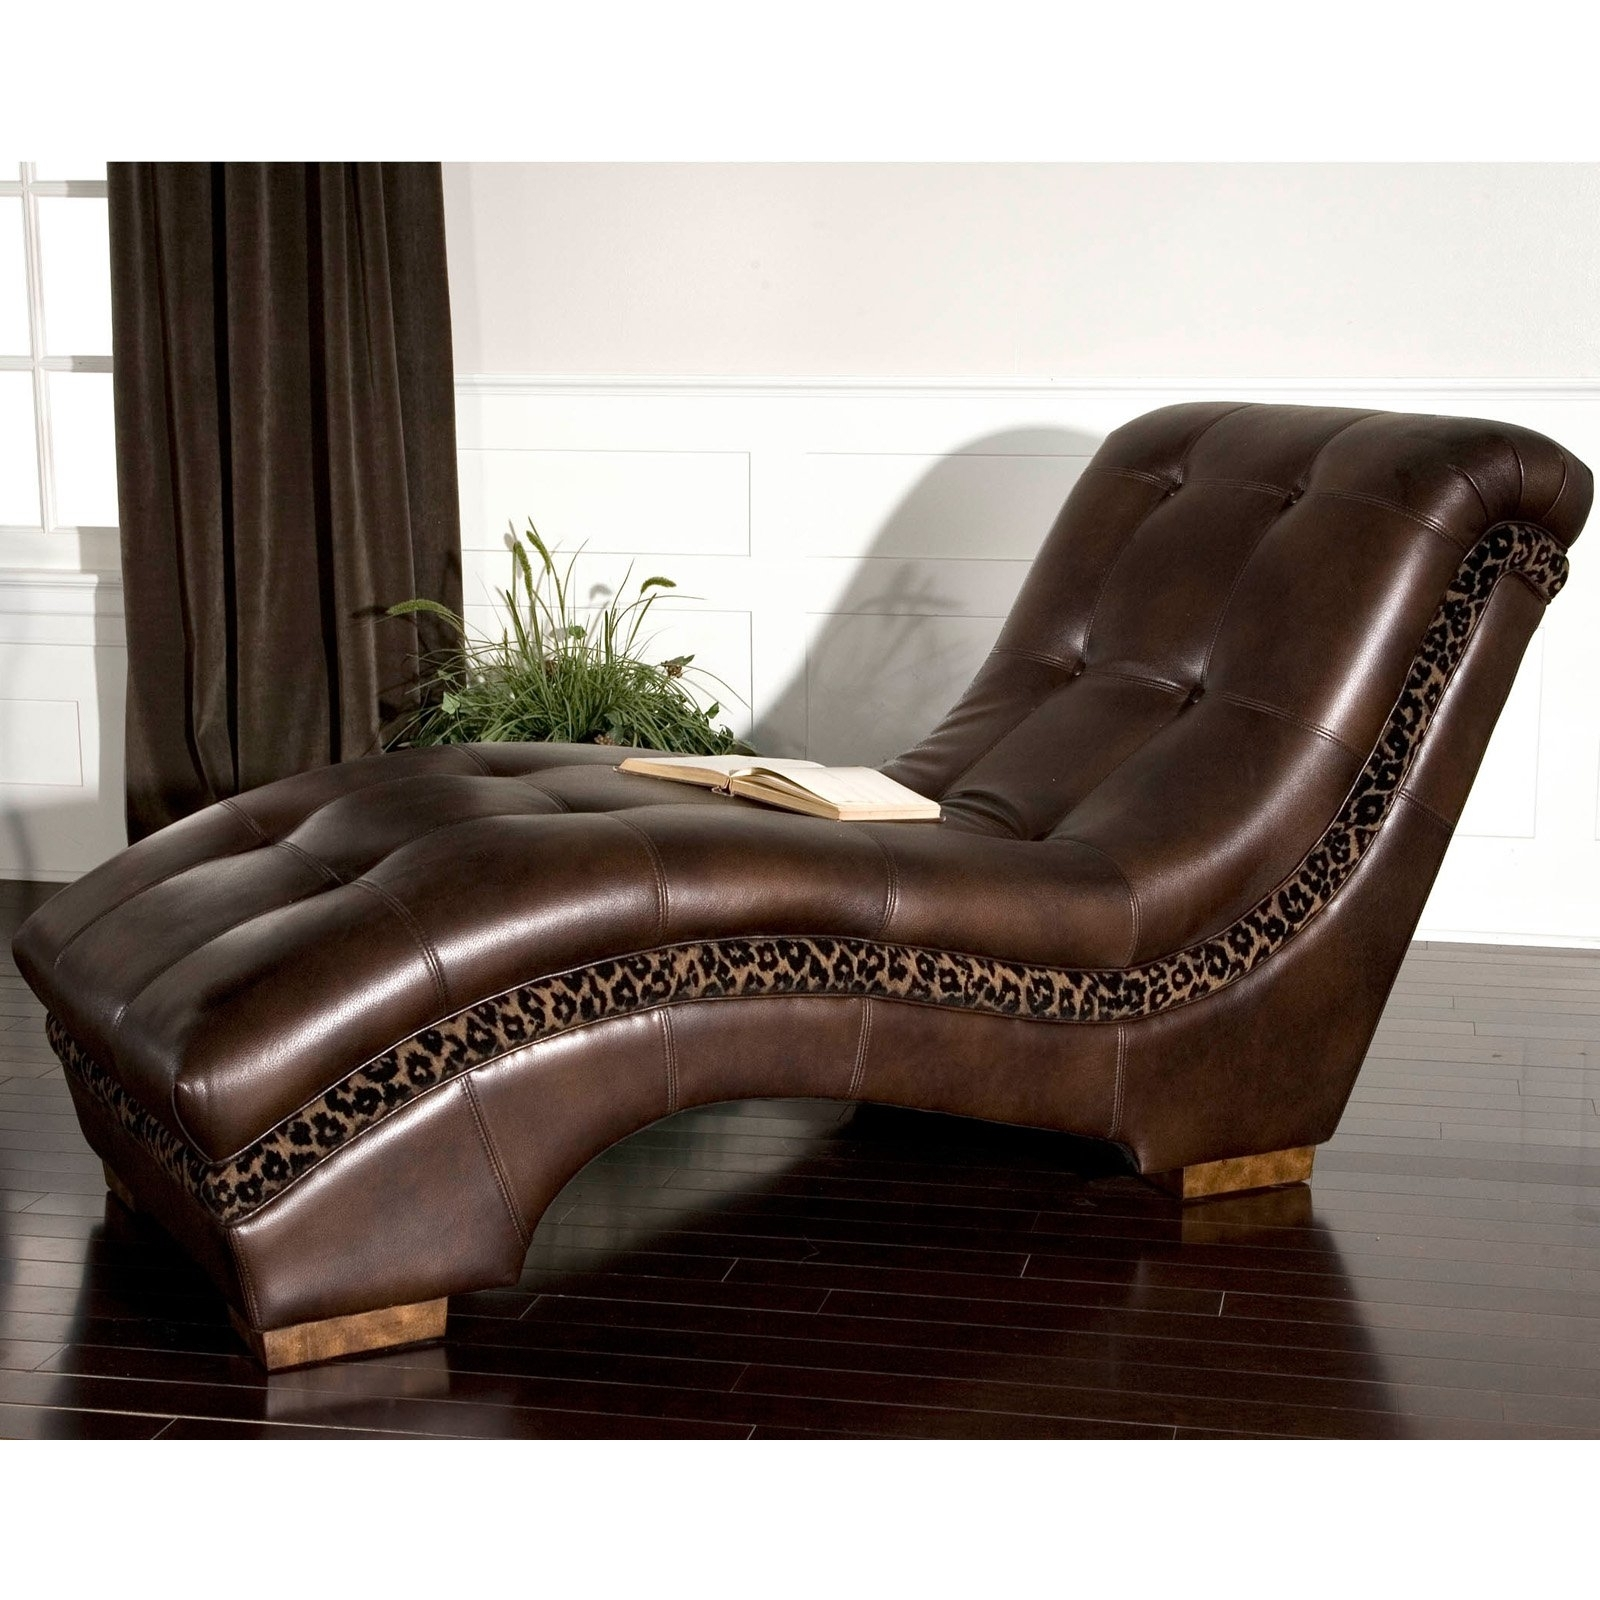 Zebra Print Chaise Lounge Chairs Inside Most Popular Brown Chaise Lounge – Brown Zebra Print Chaise Lounge, Brown (View 11 of 15)